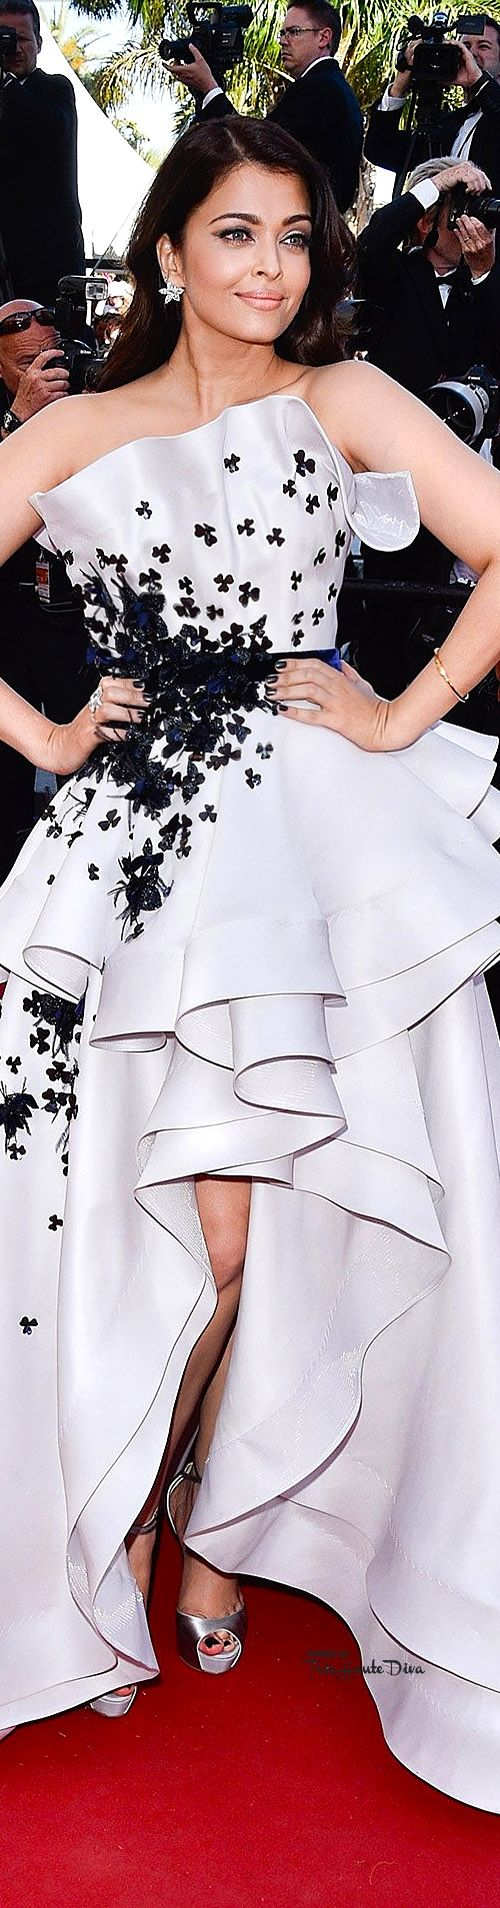 Aishwarya Rai in Ralph & Russo Couture at Cannes Film Festival 2015 Red Carpet